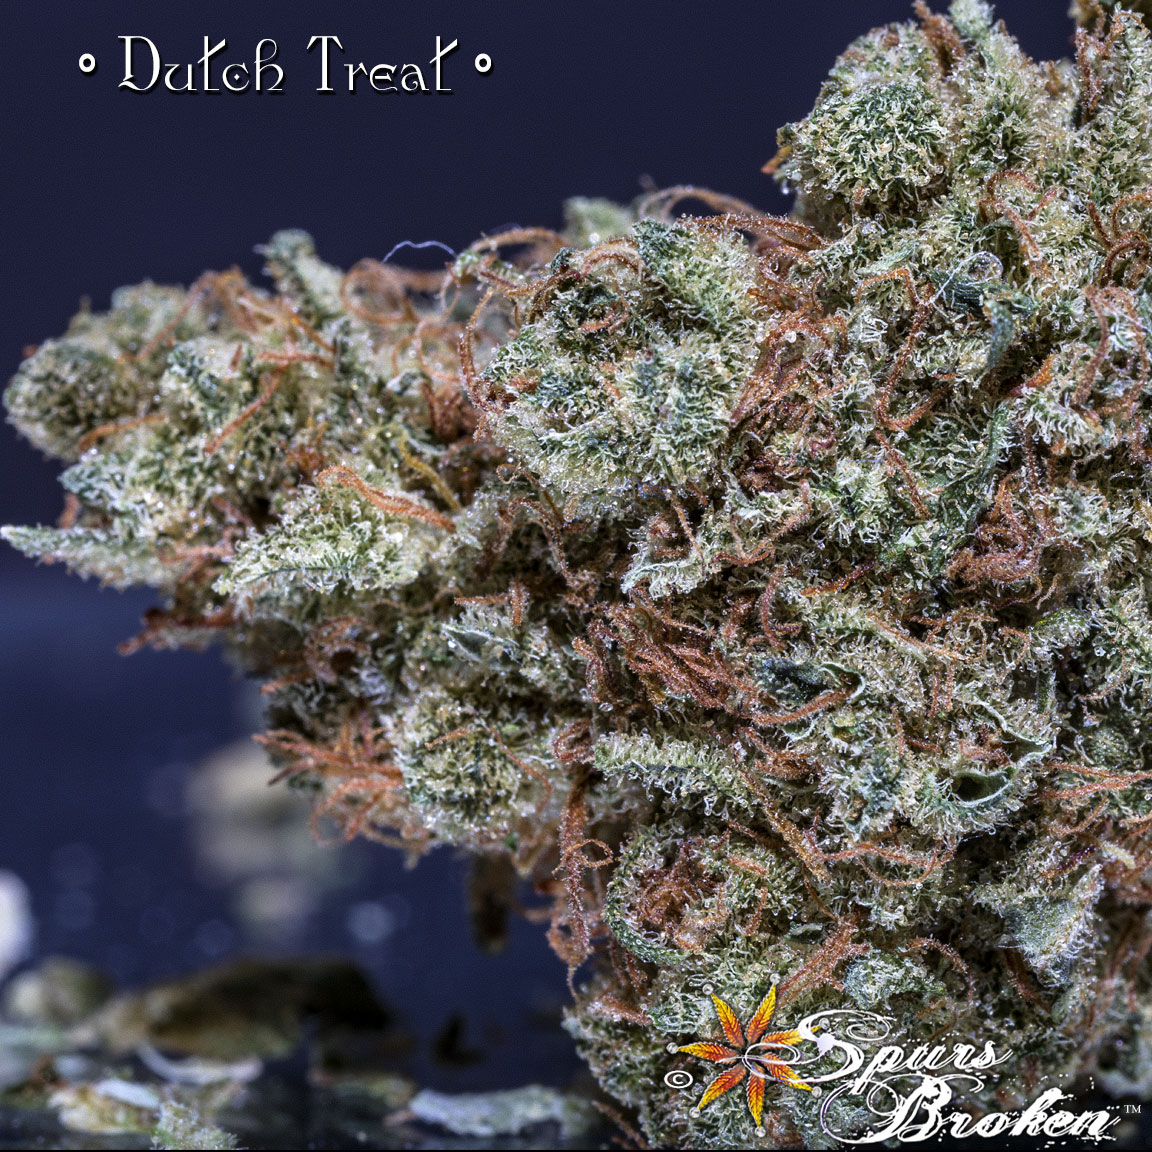 Dutch Treat - Cannabis Macro Photography by Spurs Broken (Robert R. Sanders)